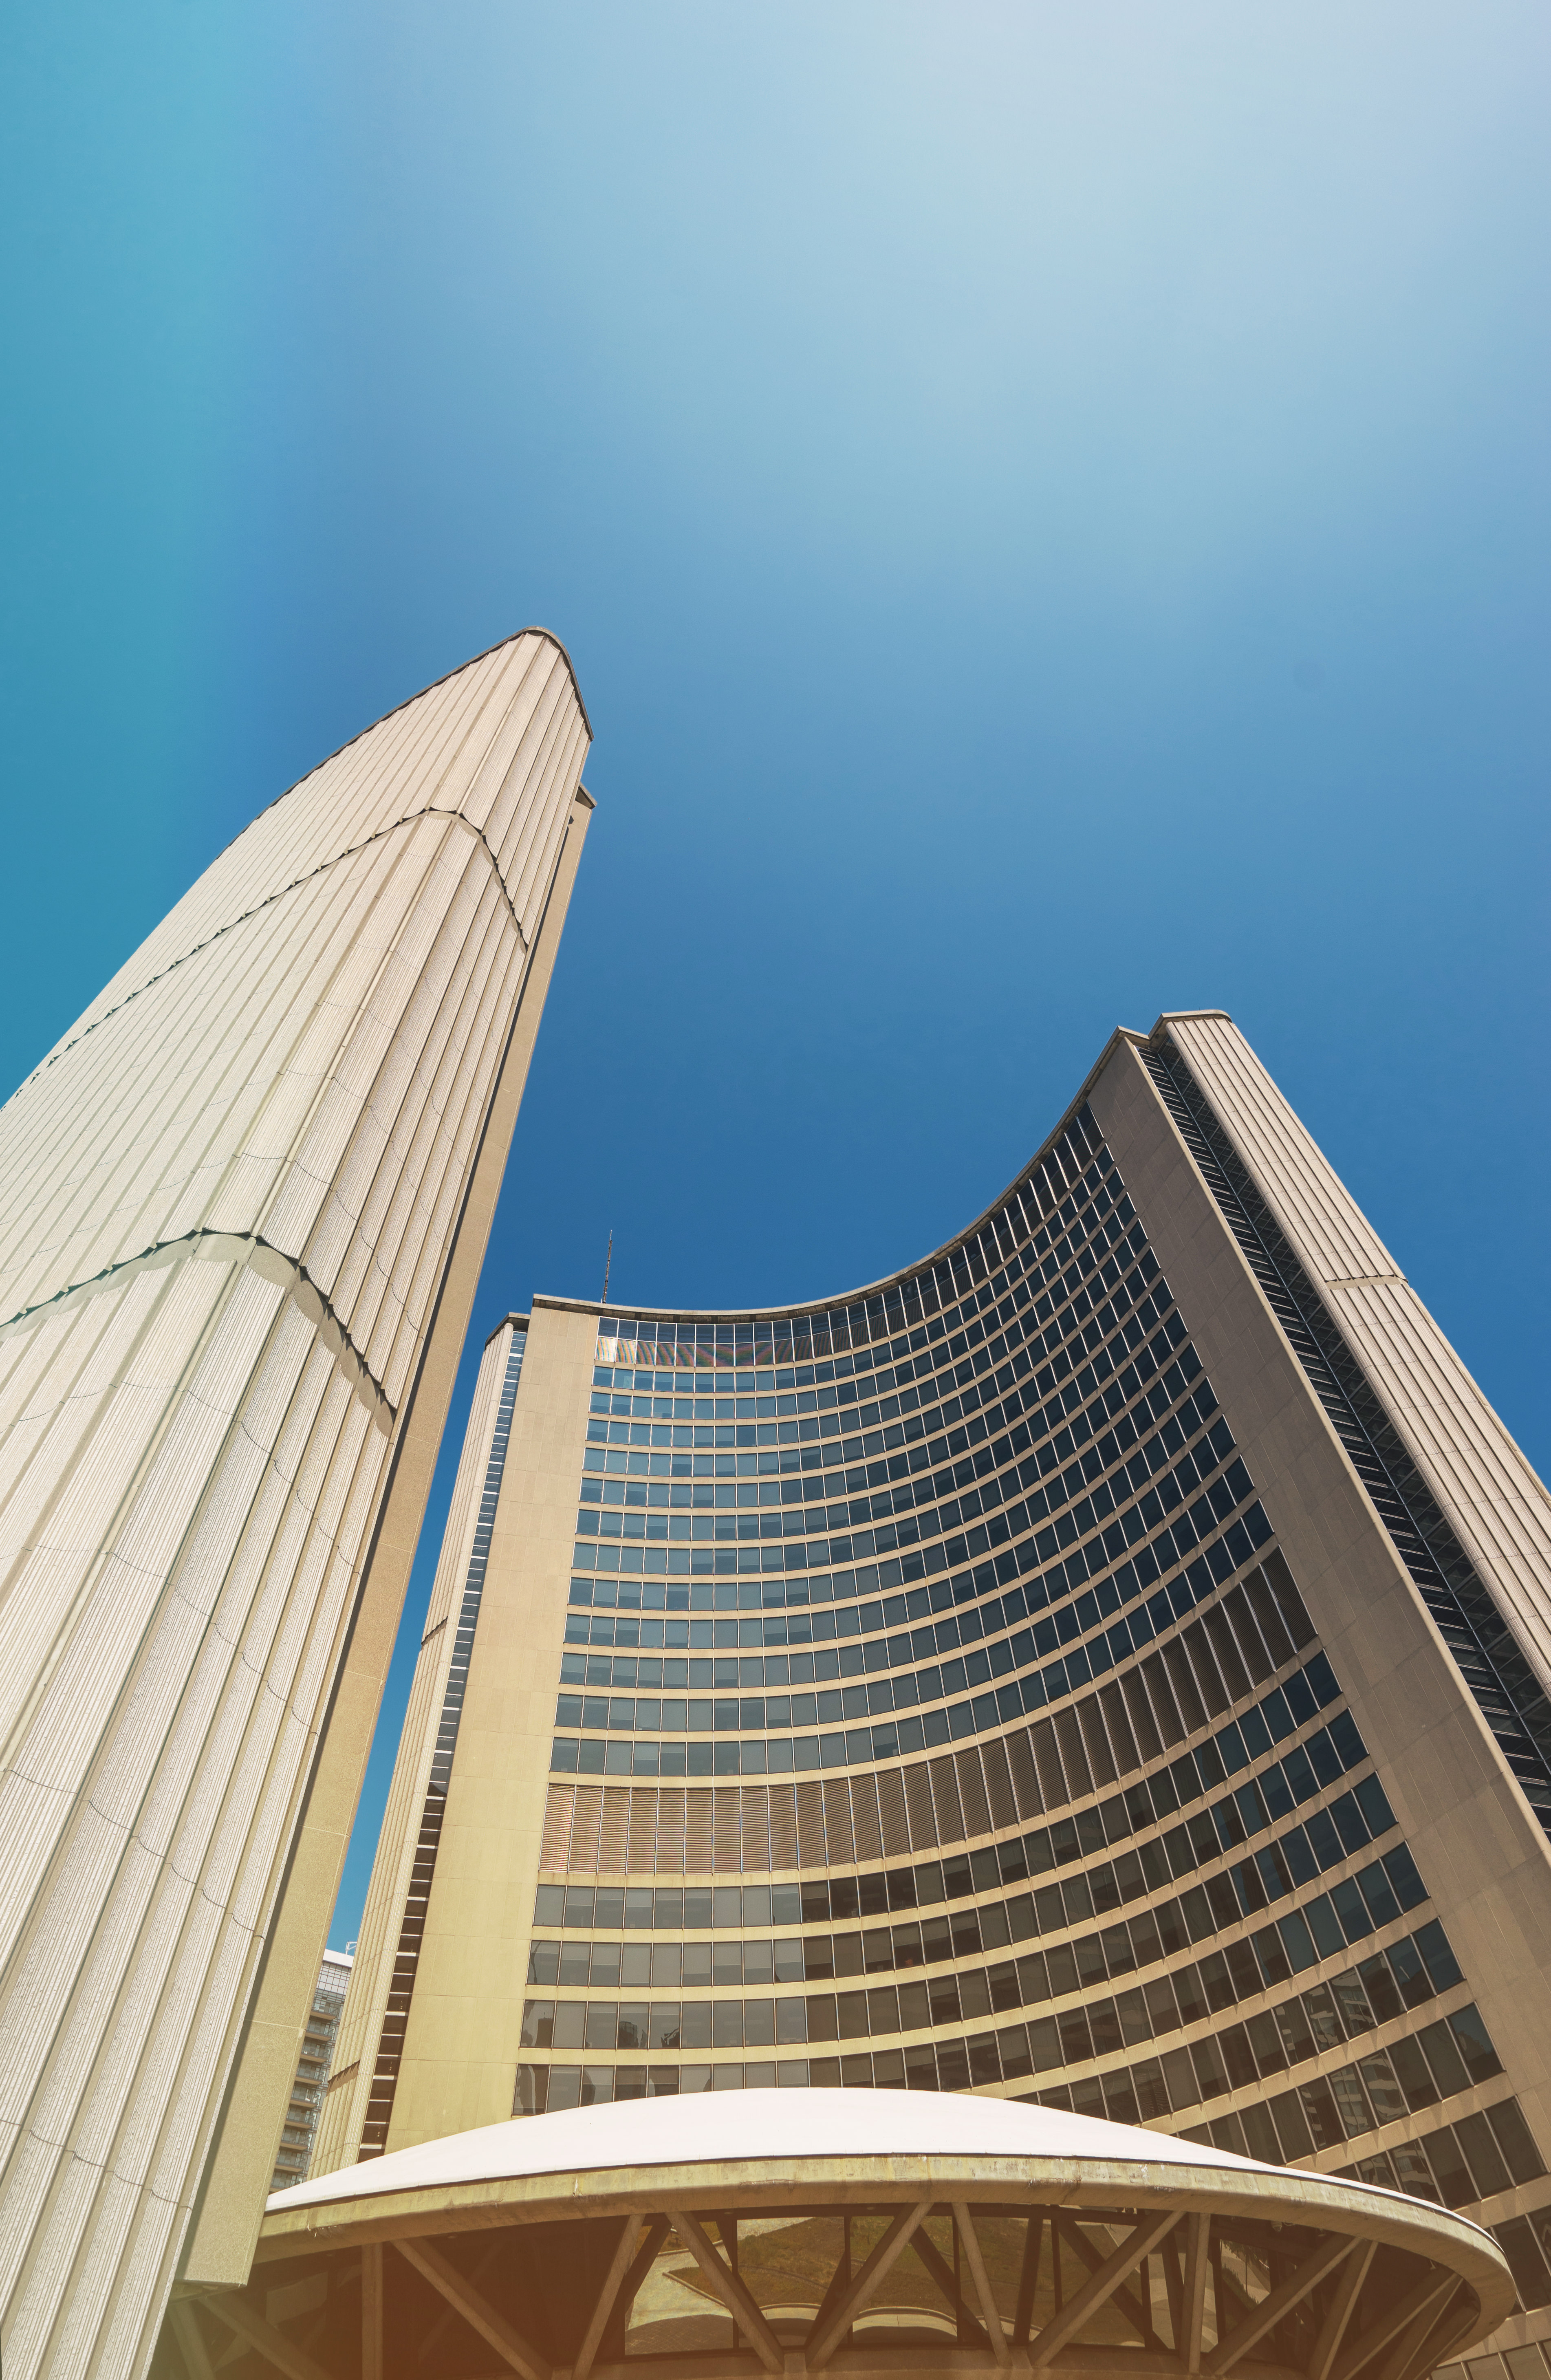 Black Screen Wallpaper Free Stock Photo Of Architecture Blue Sky Building